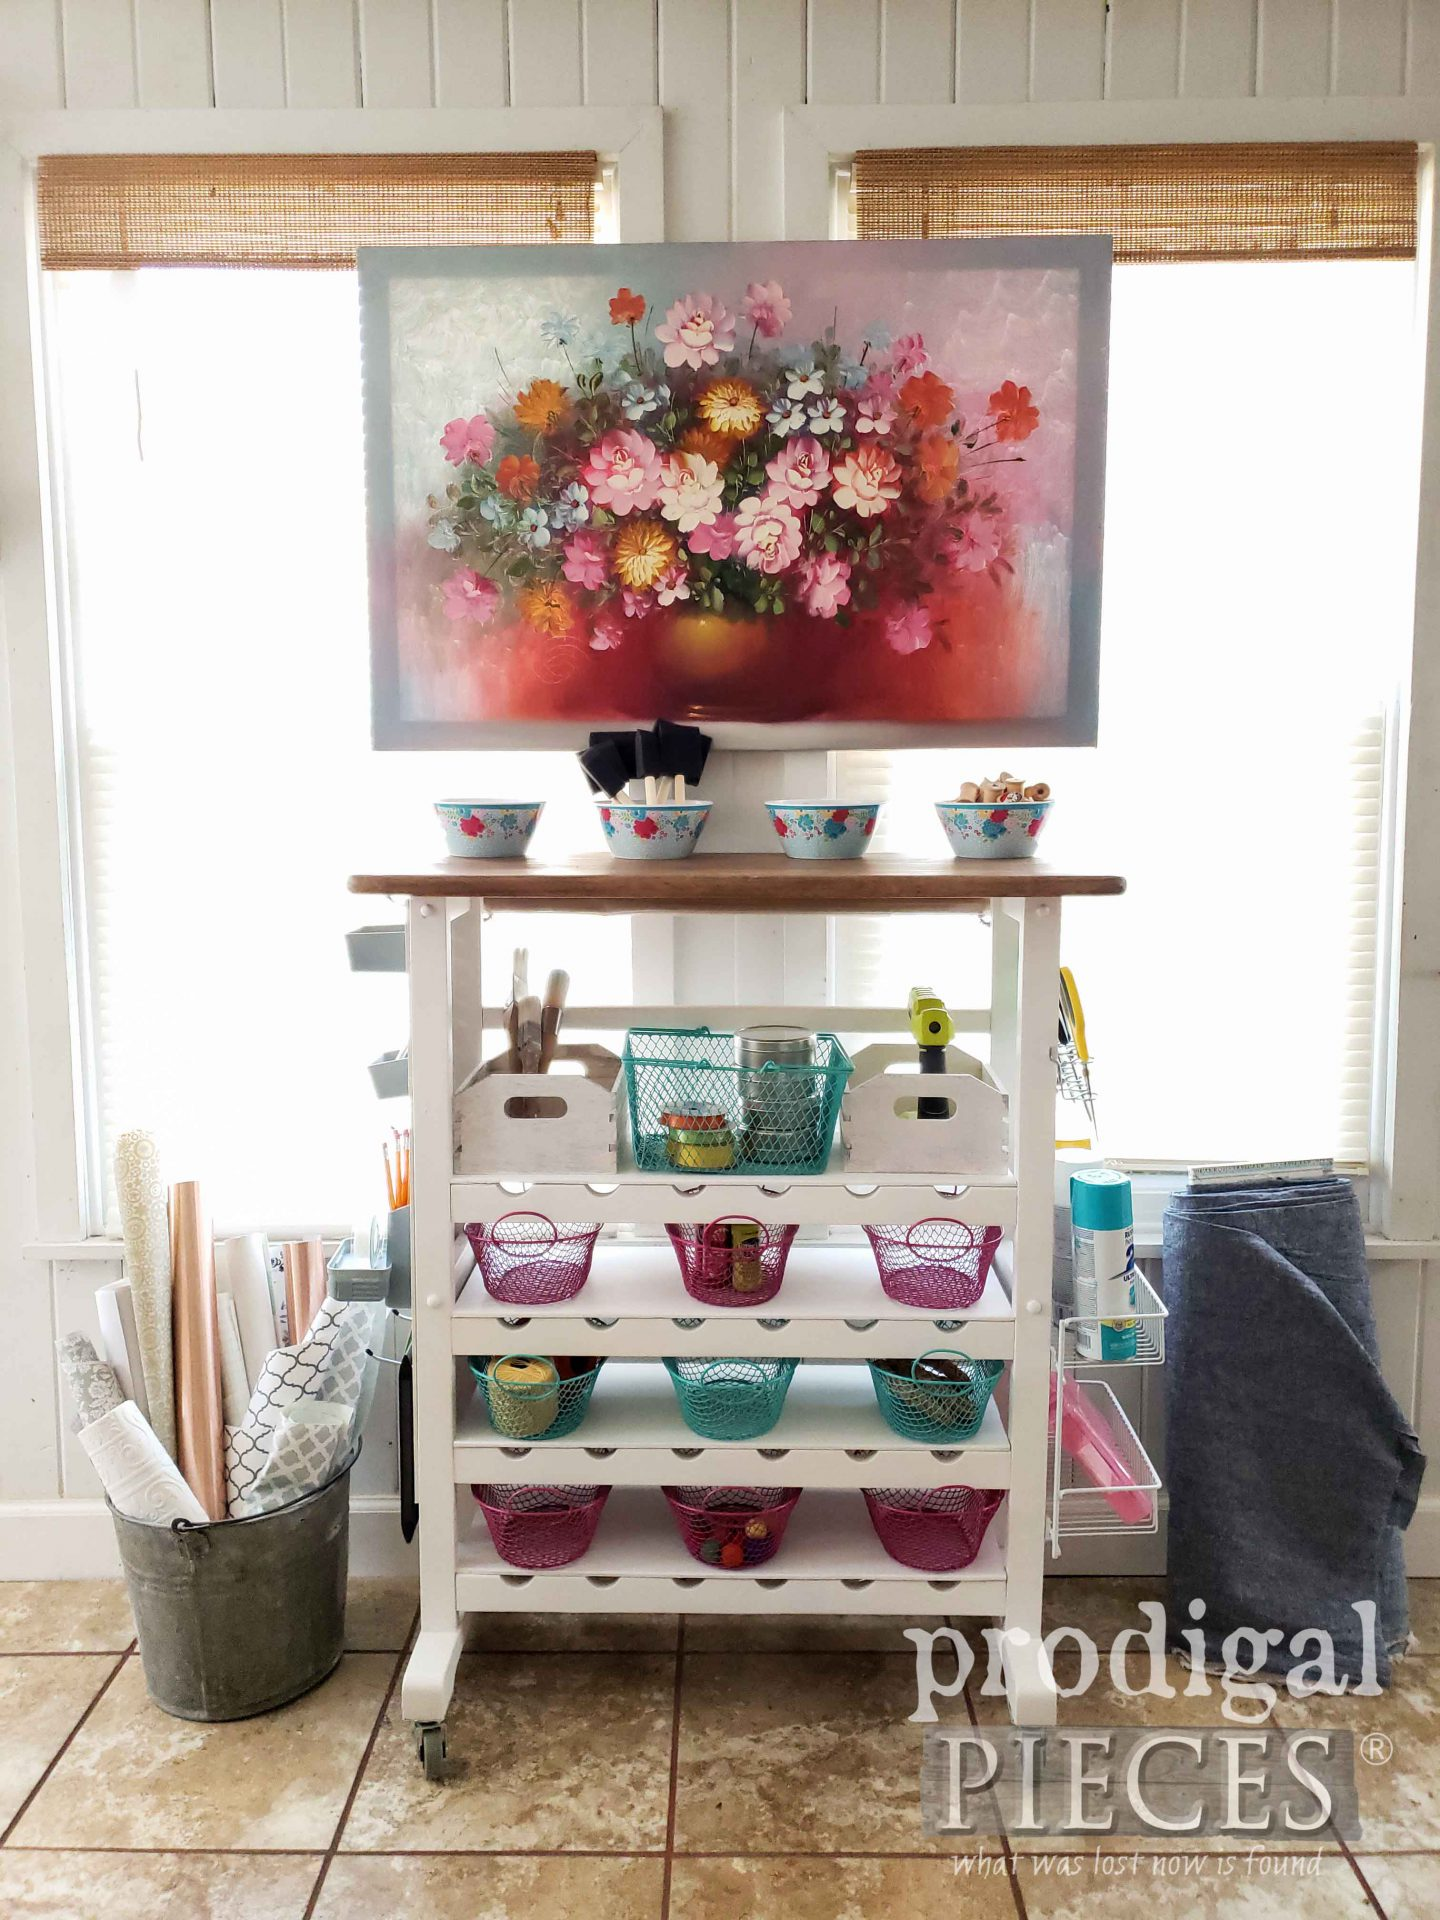 DIY Repurposed Craft Cart from Upcycled Wine Rack by Larissa of Prodigal Pieces | prodigalpieces.com #prodigalpieces #home #diy #crafts #storage #homedecor